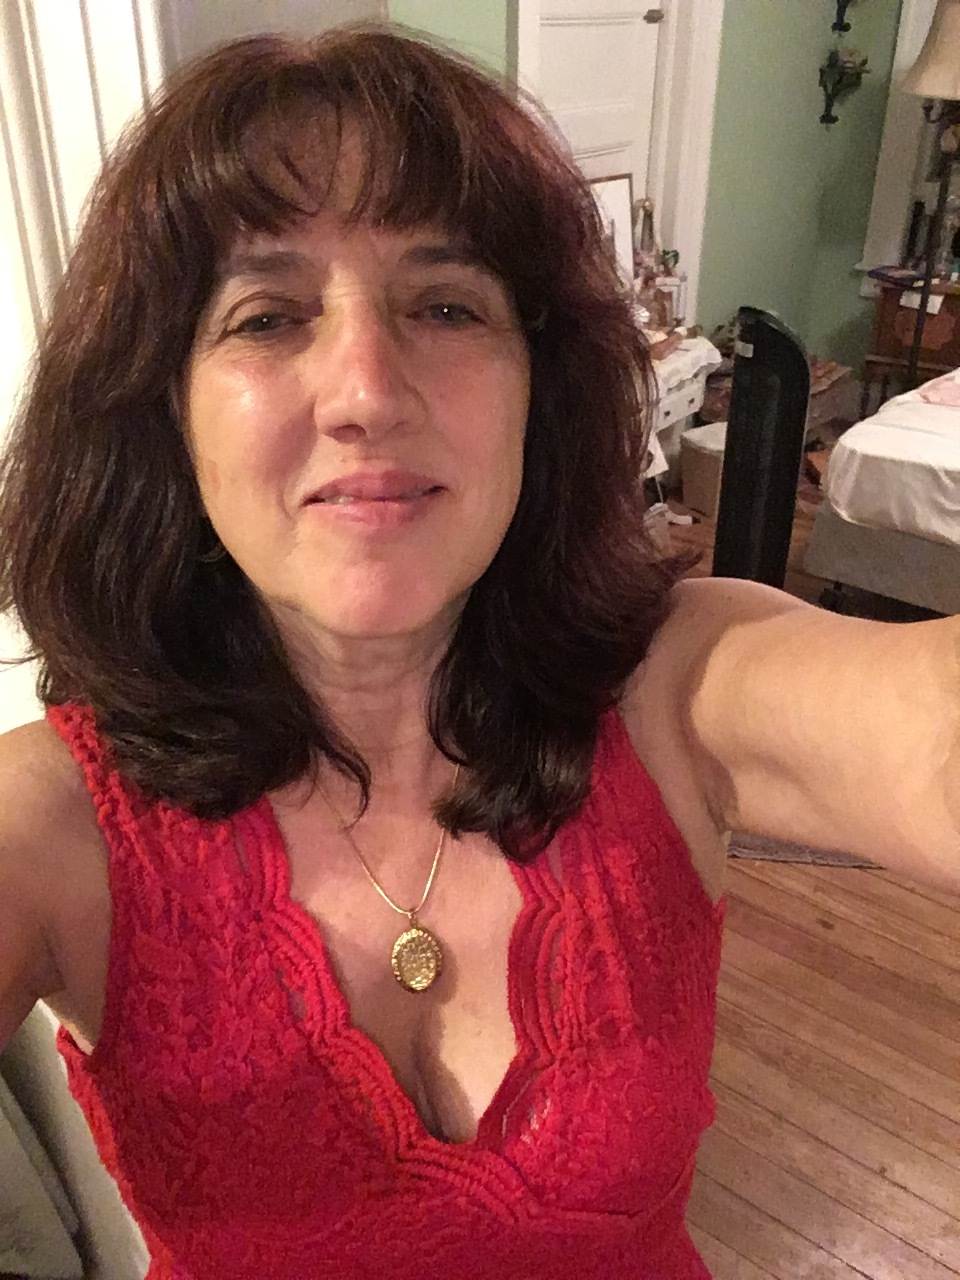 west orange buddhist single women West orange online - online dating services can help you find more dates and more relationships find your love today or discover your perfect match.